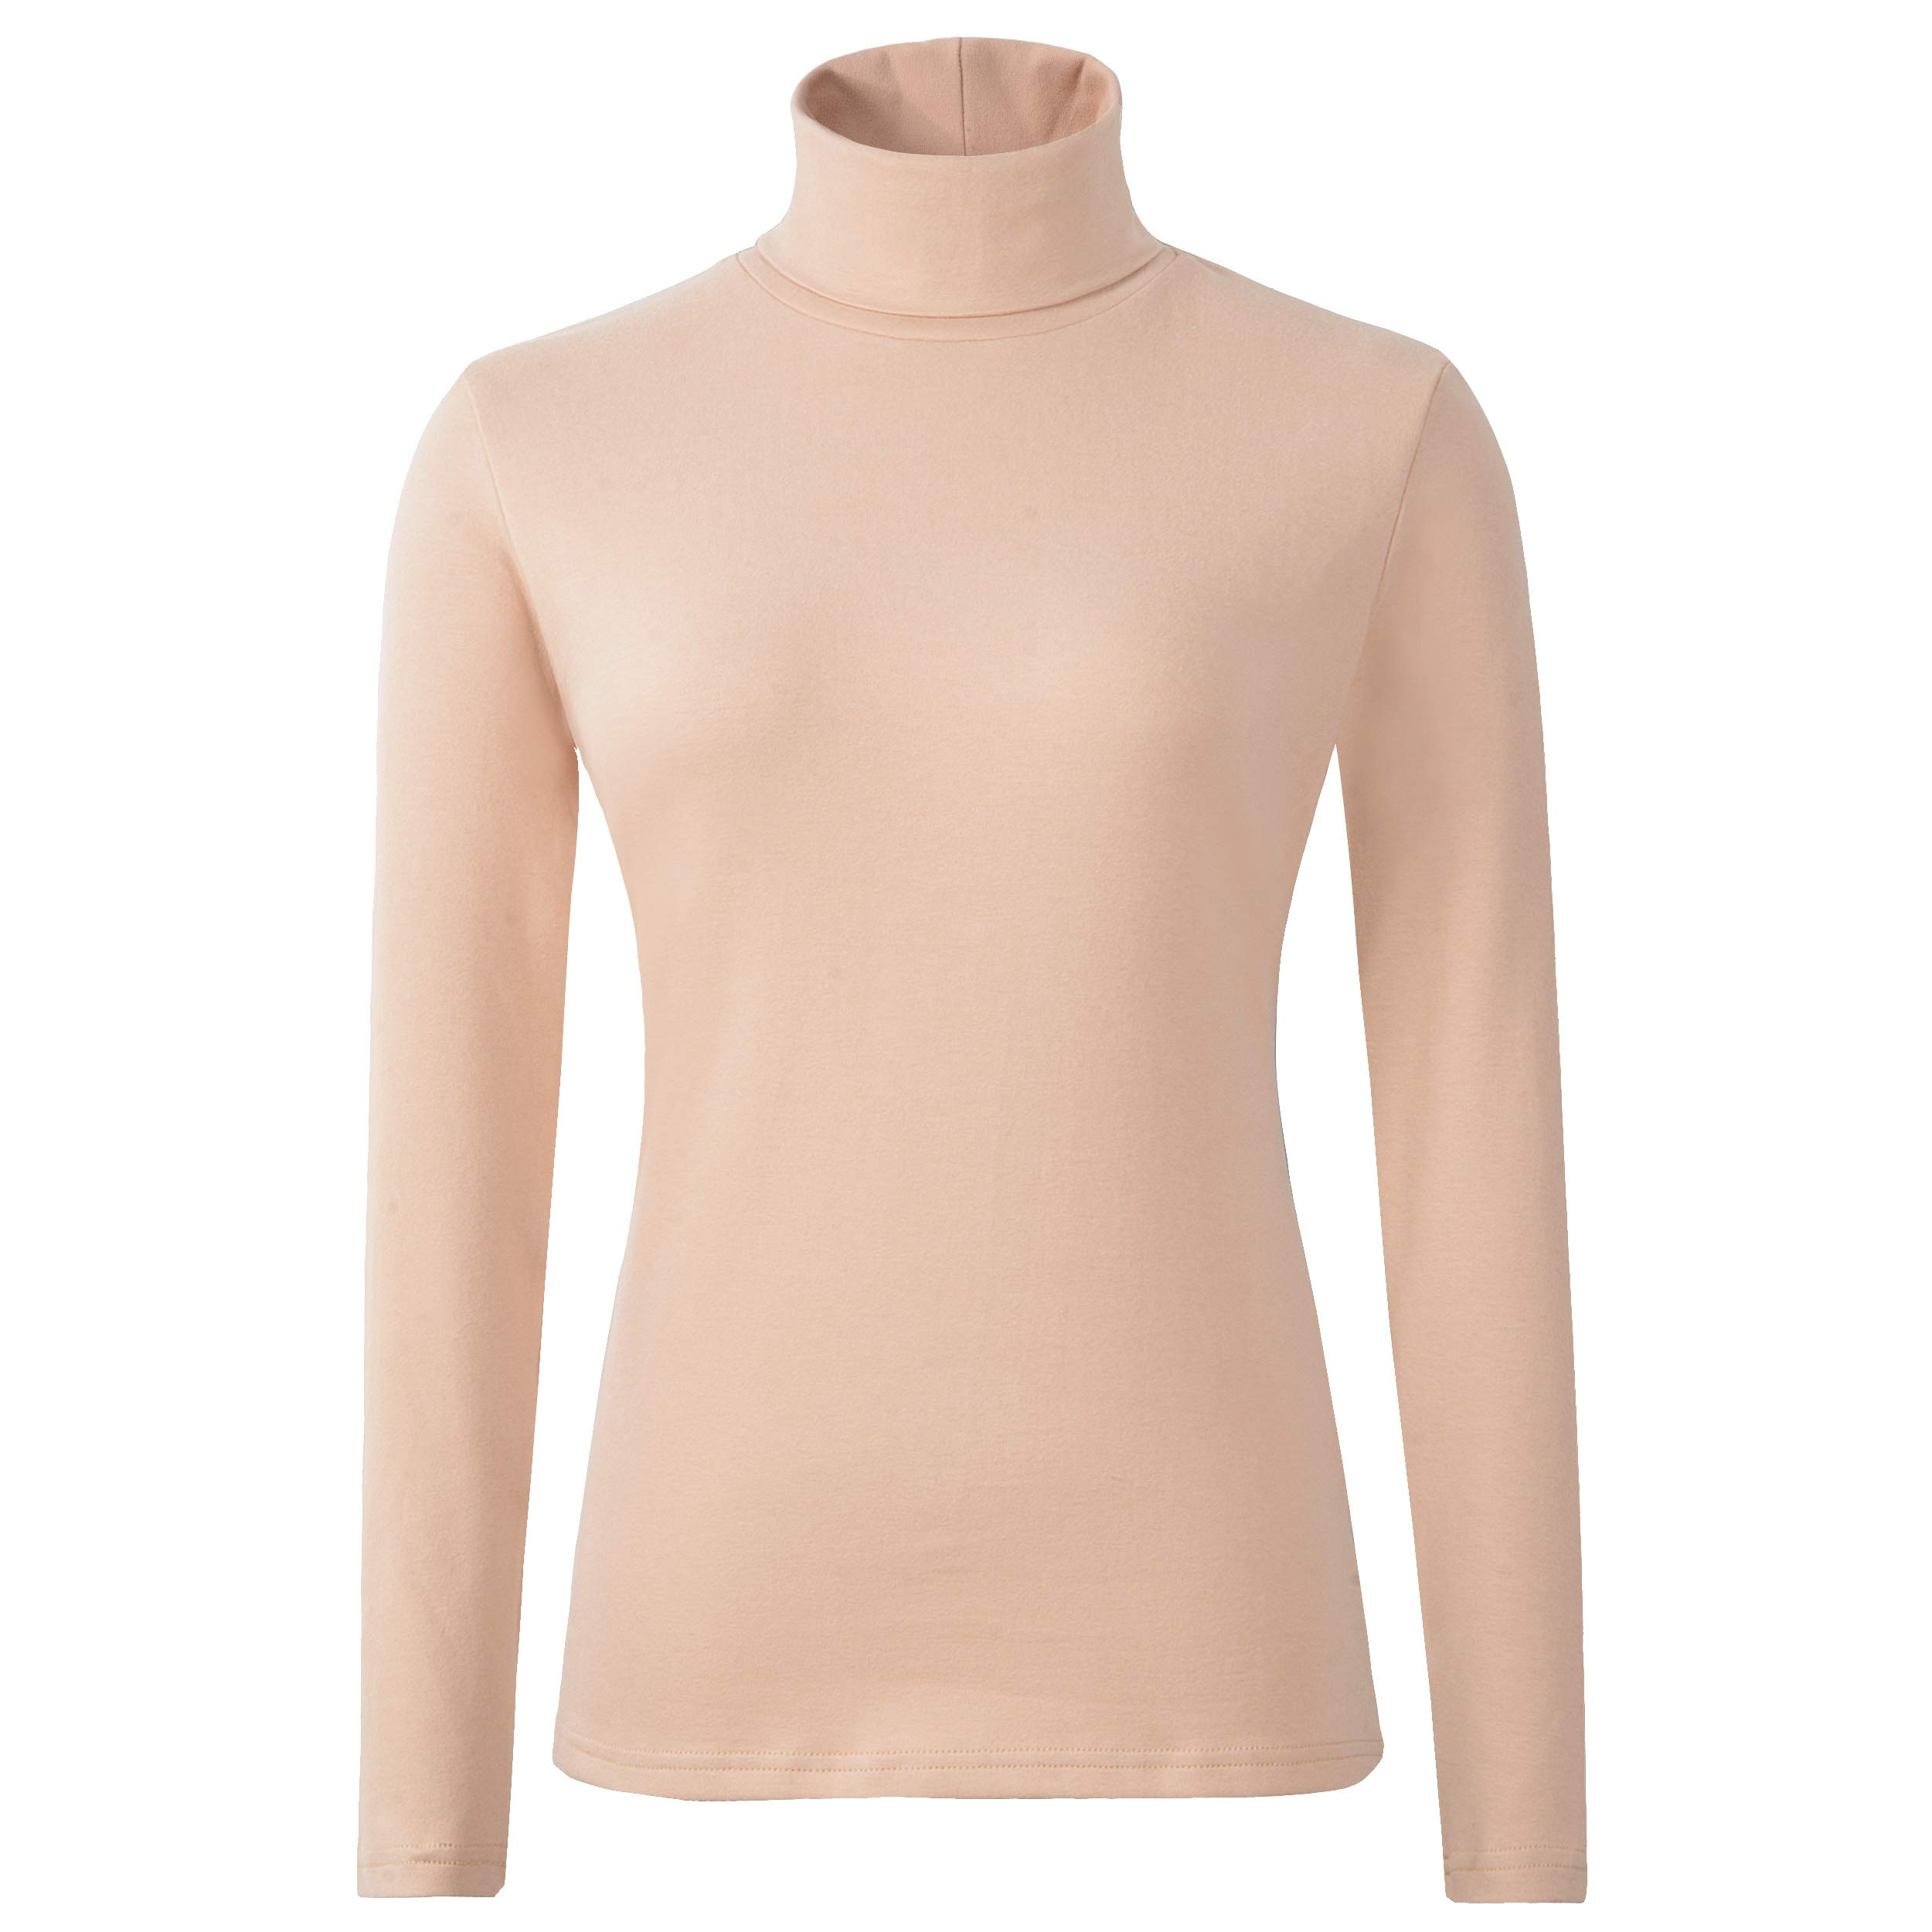 HieasyFit Women's Cotton Turtleneck Top Basic Layering Thermal Underwear(Beige M) by HieasyFit